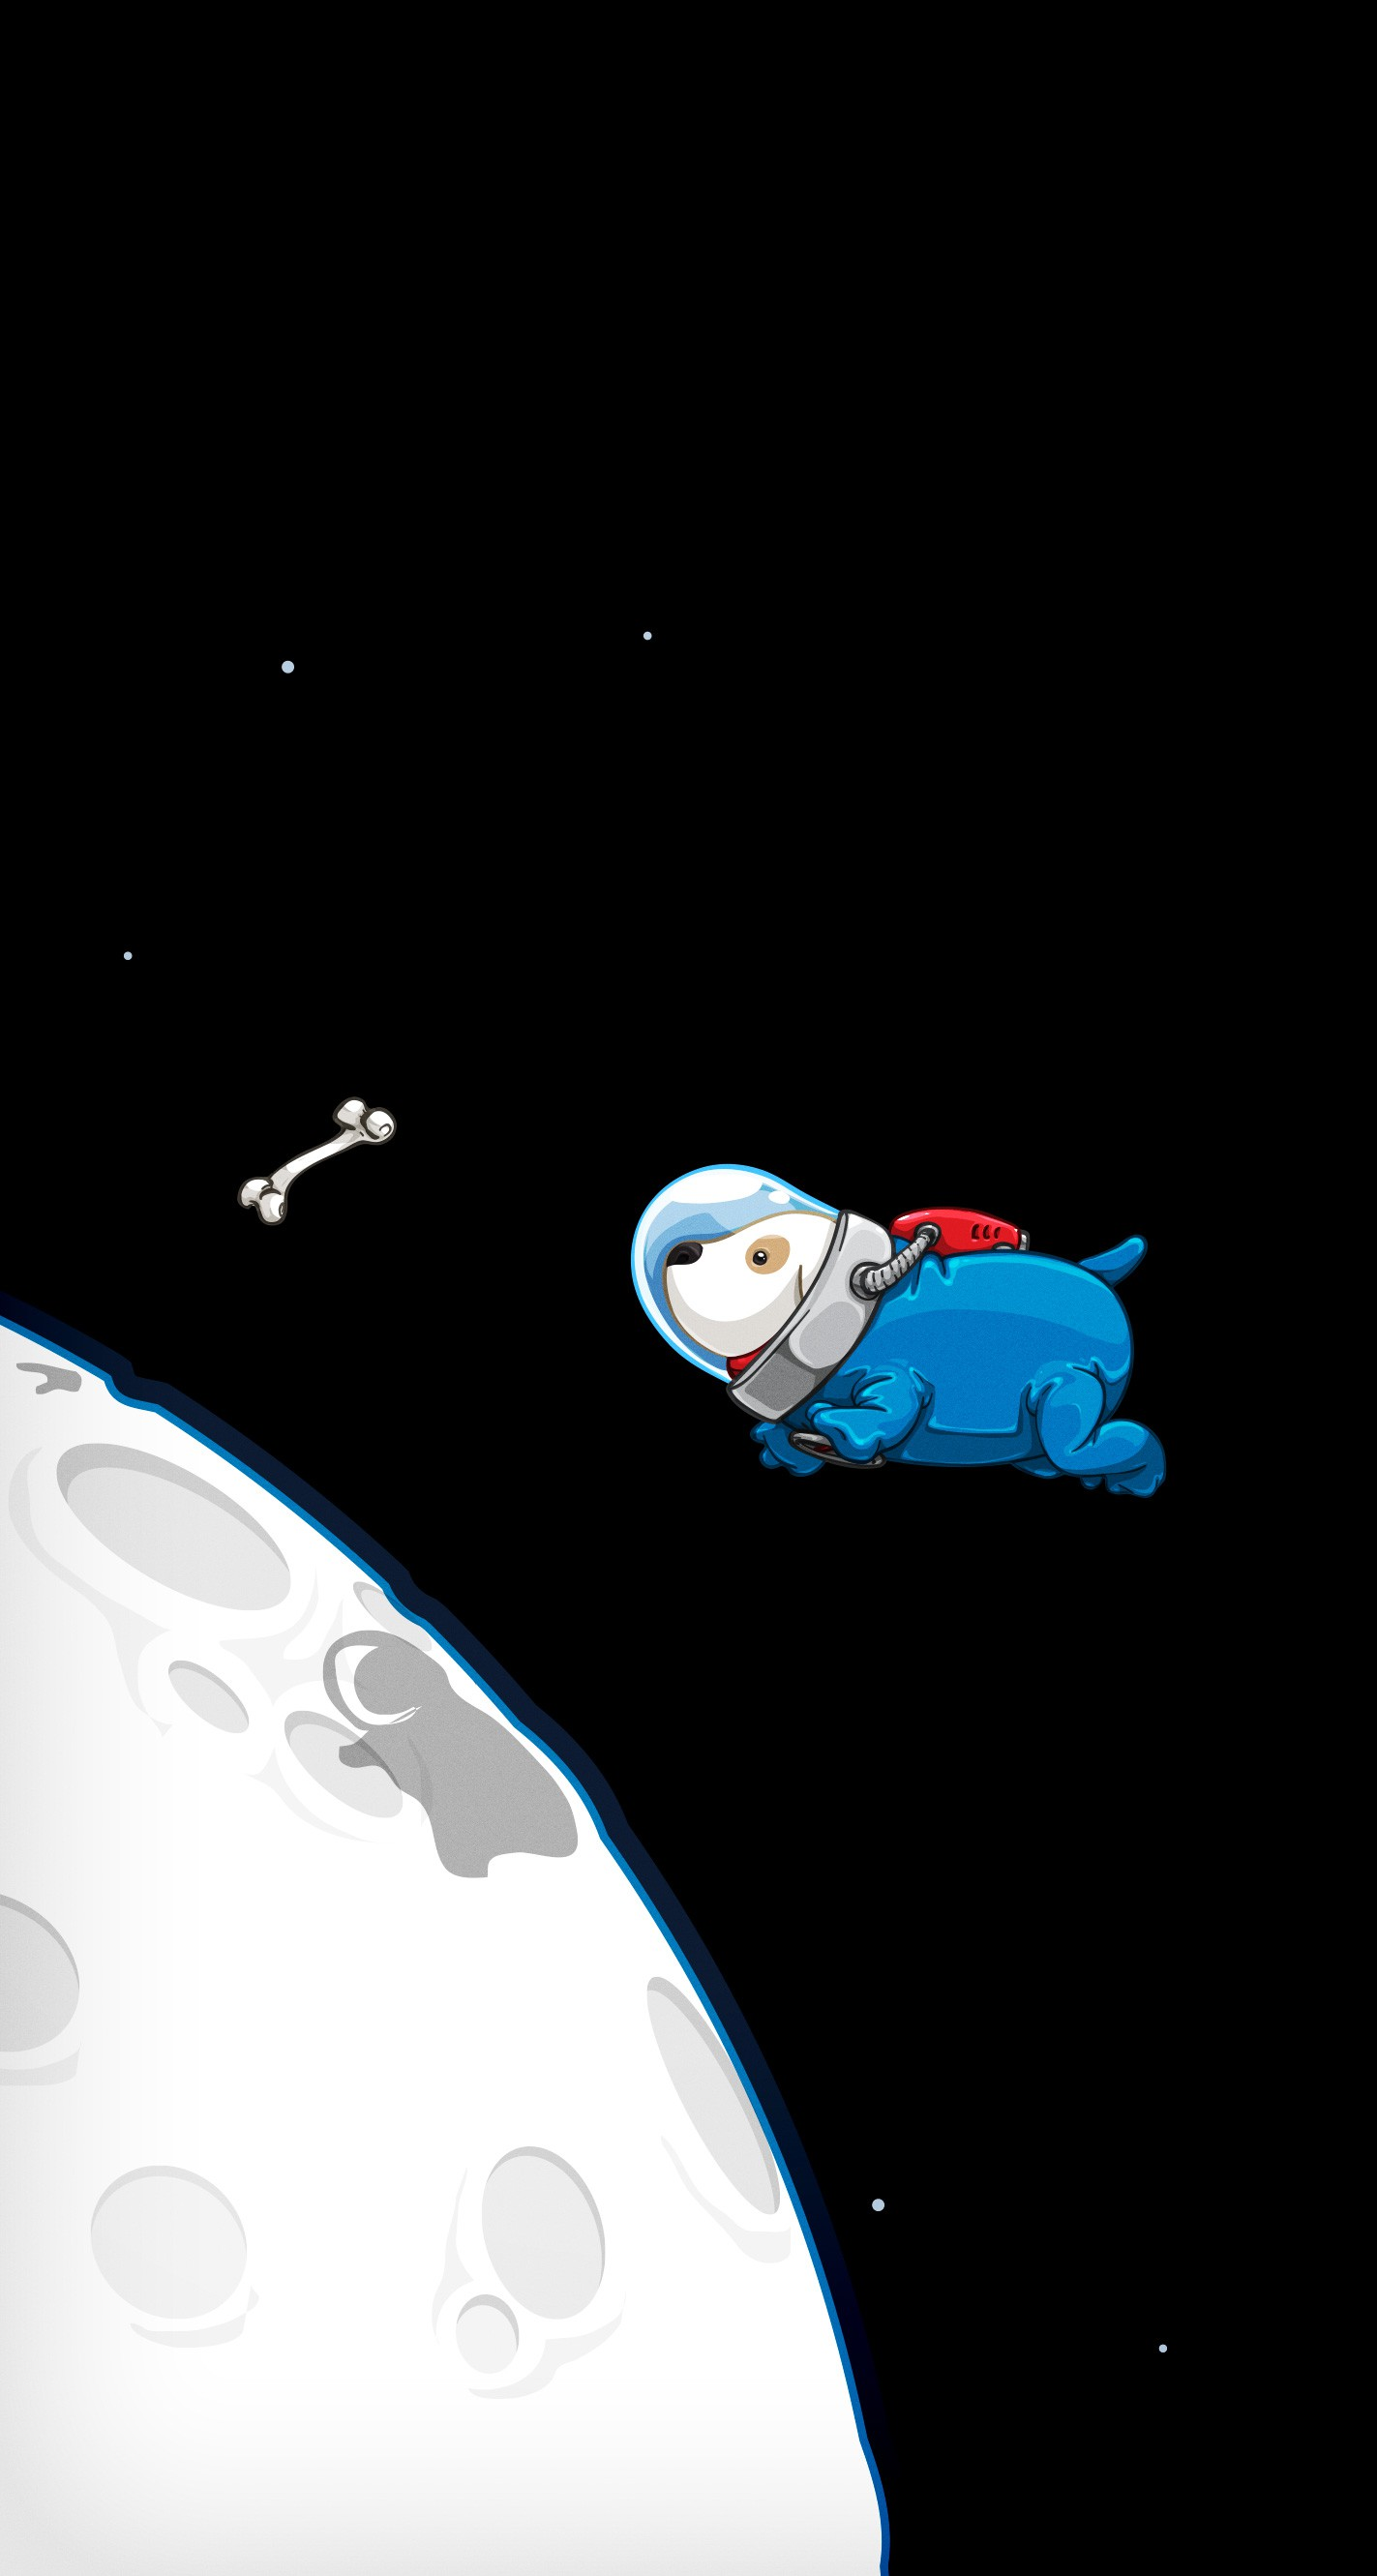 The End Wallpaper Cute David Lanham Space Doggy